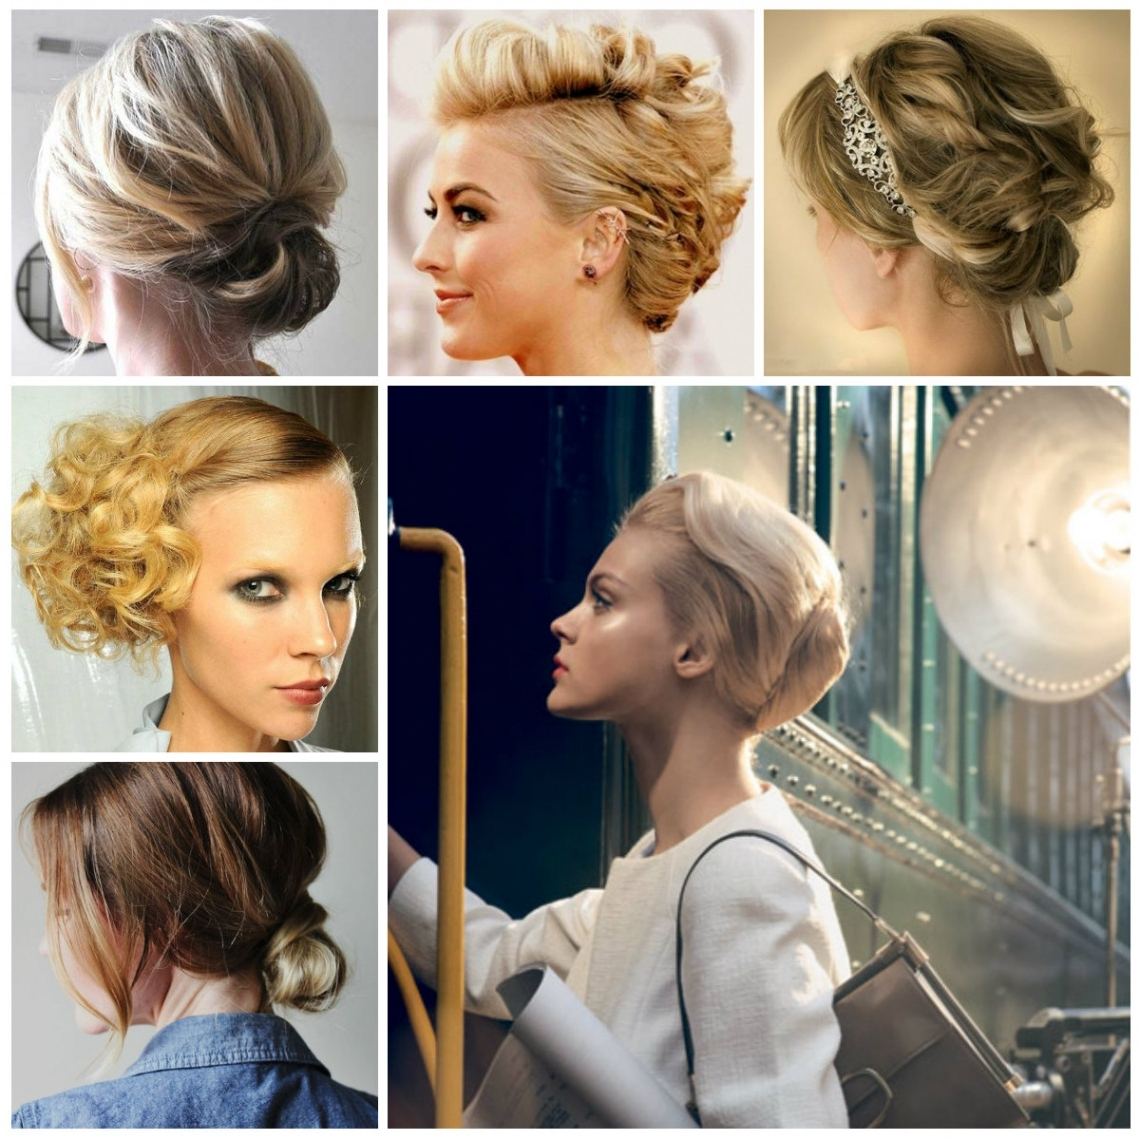 Updo Hairstyles For Short Hair 2017 | New Haircuts To Try For 2018 Throughout New Updo Hairstyles (Gallery 8 of 15)